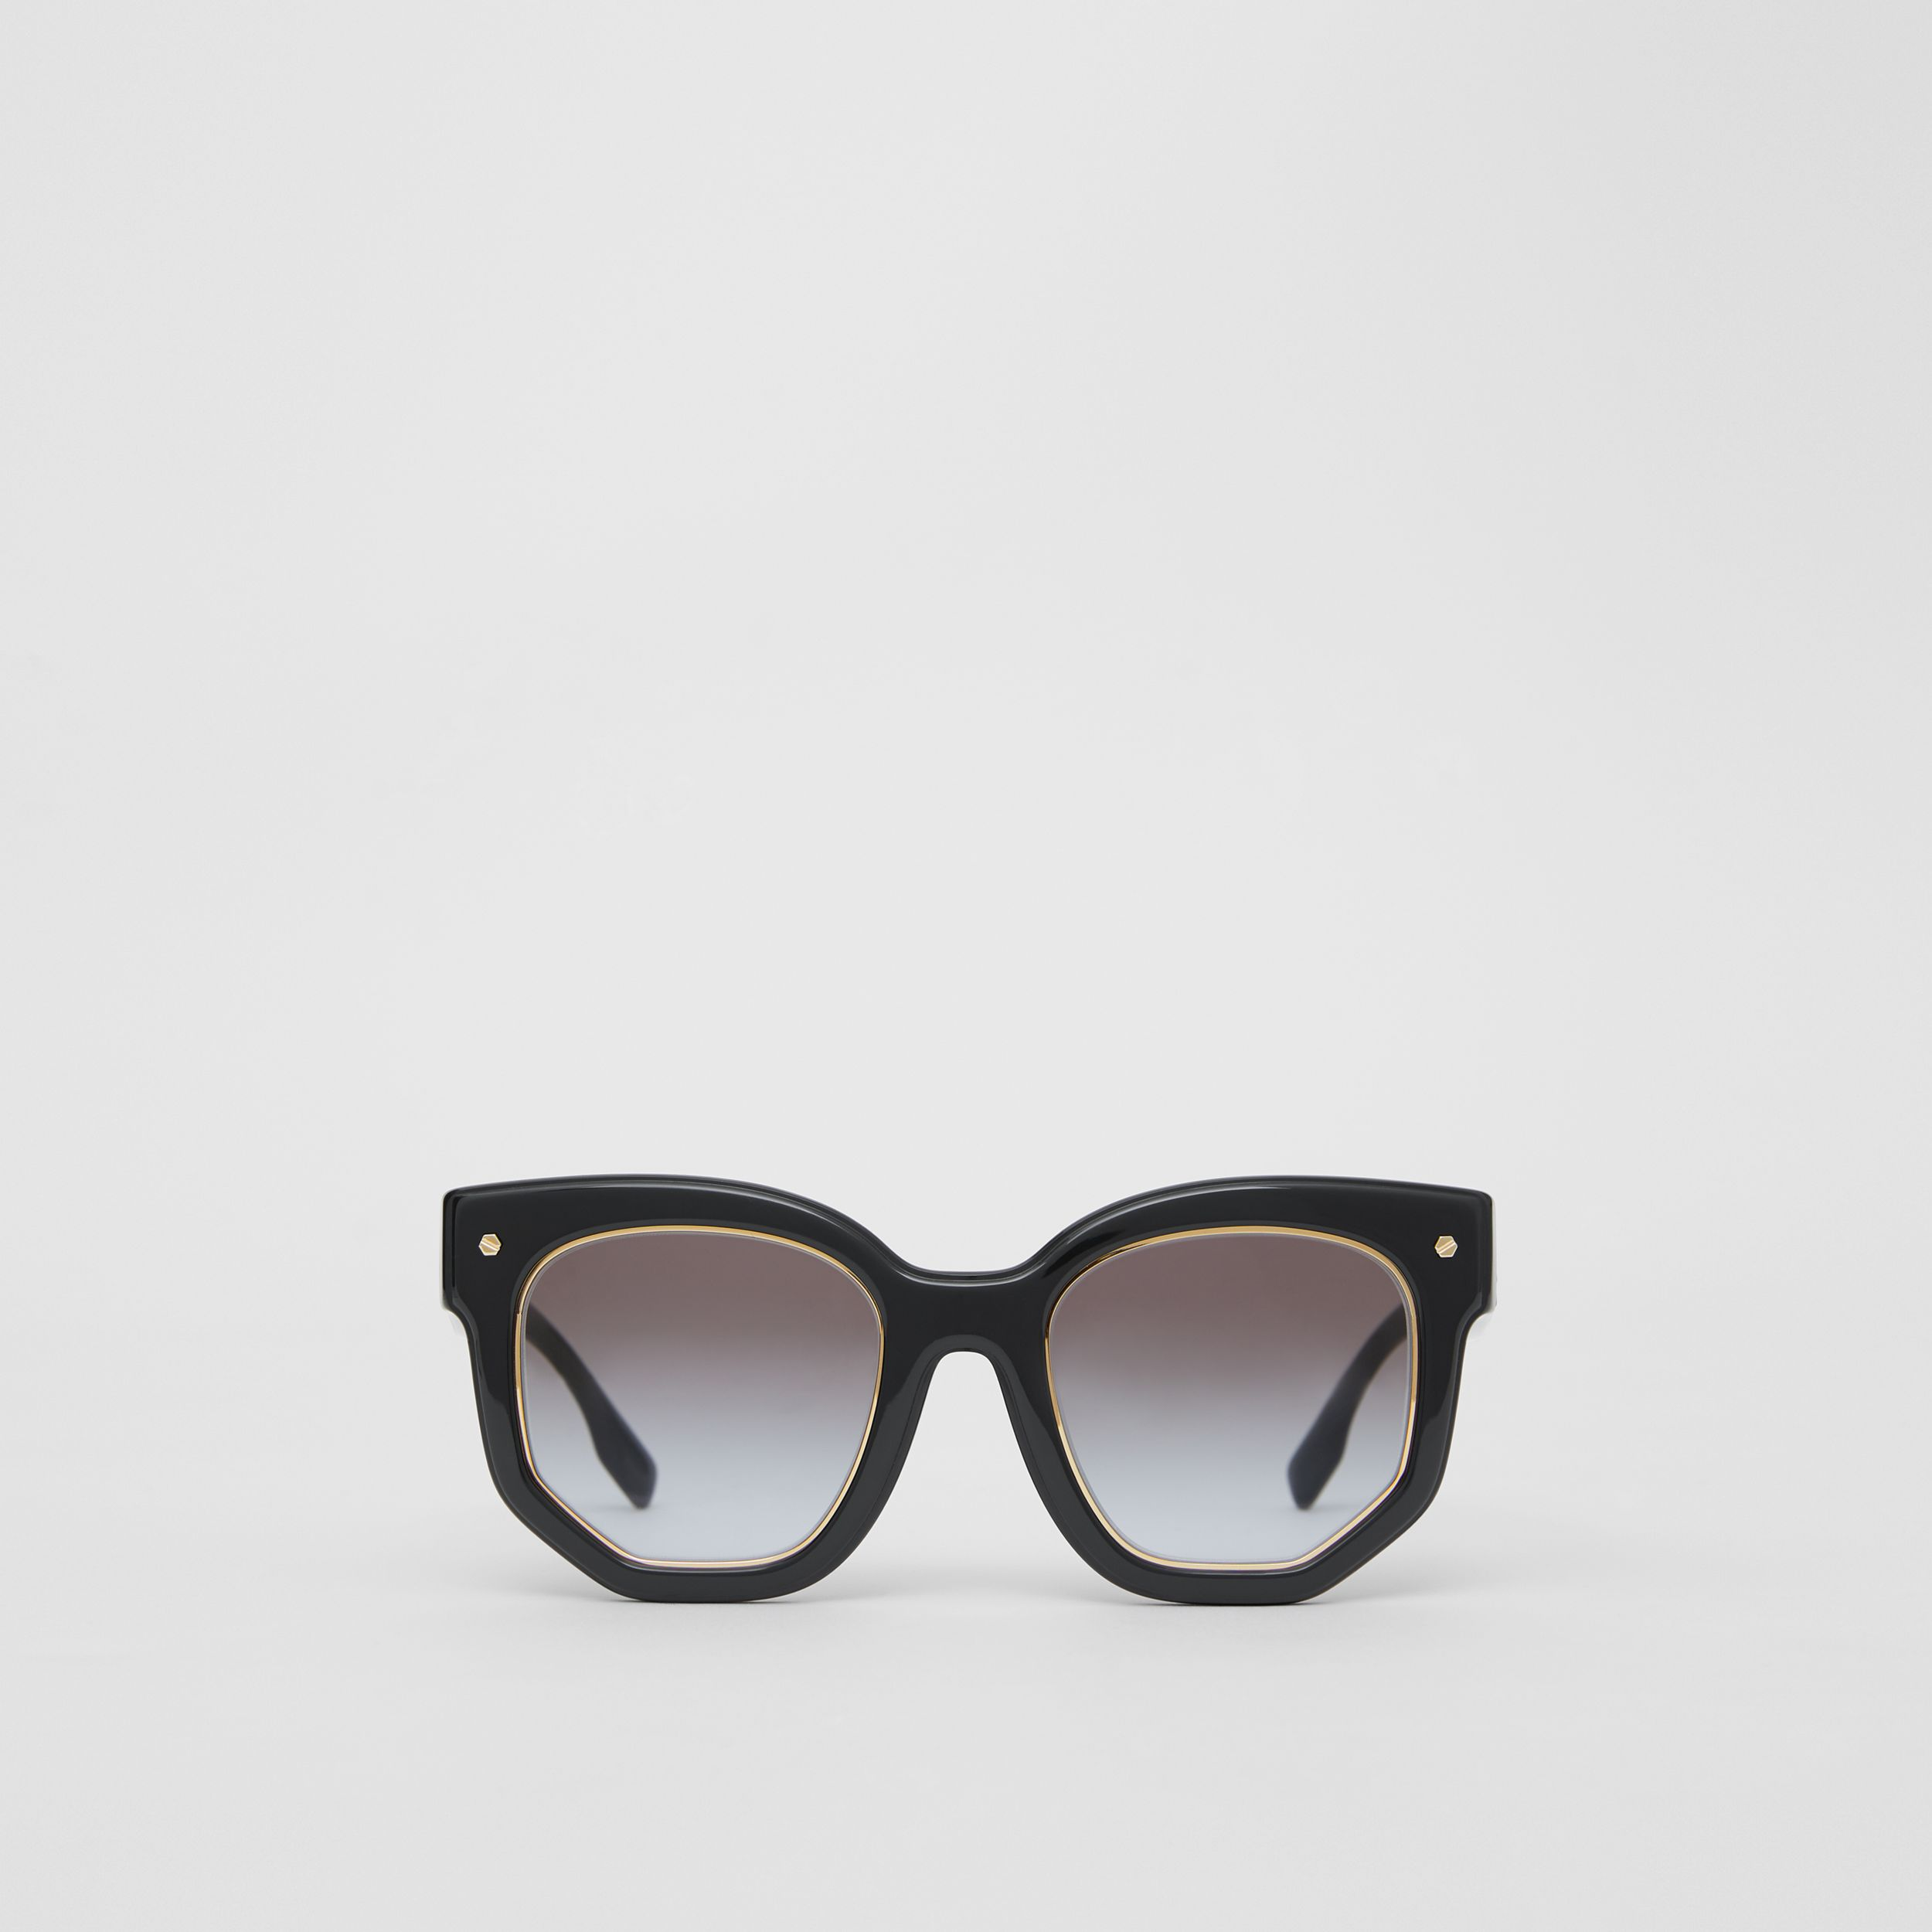 Geometric Frame Sunglasses in Black | Burberry - 1